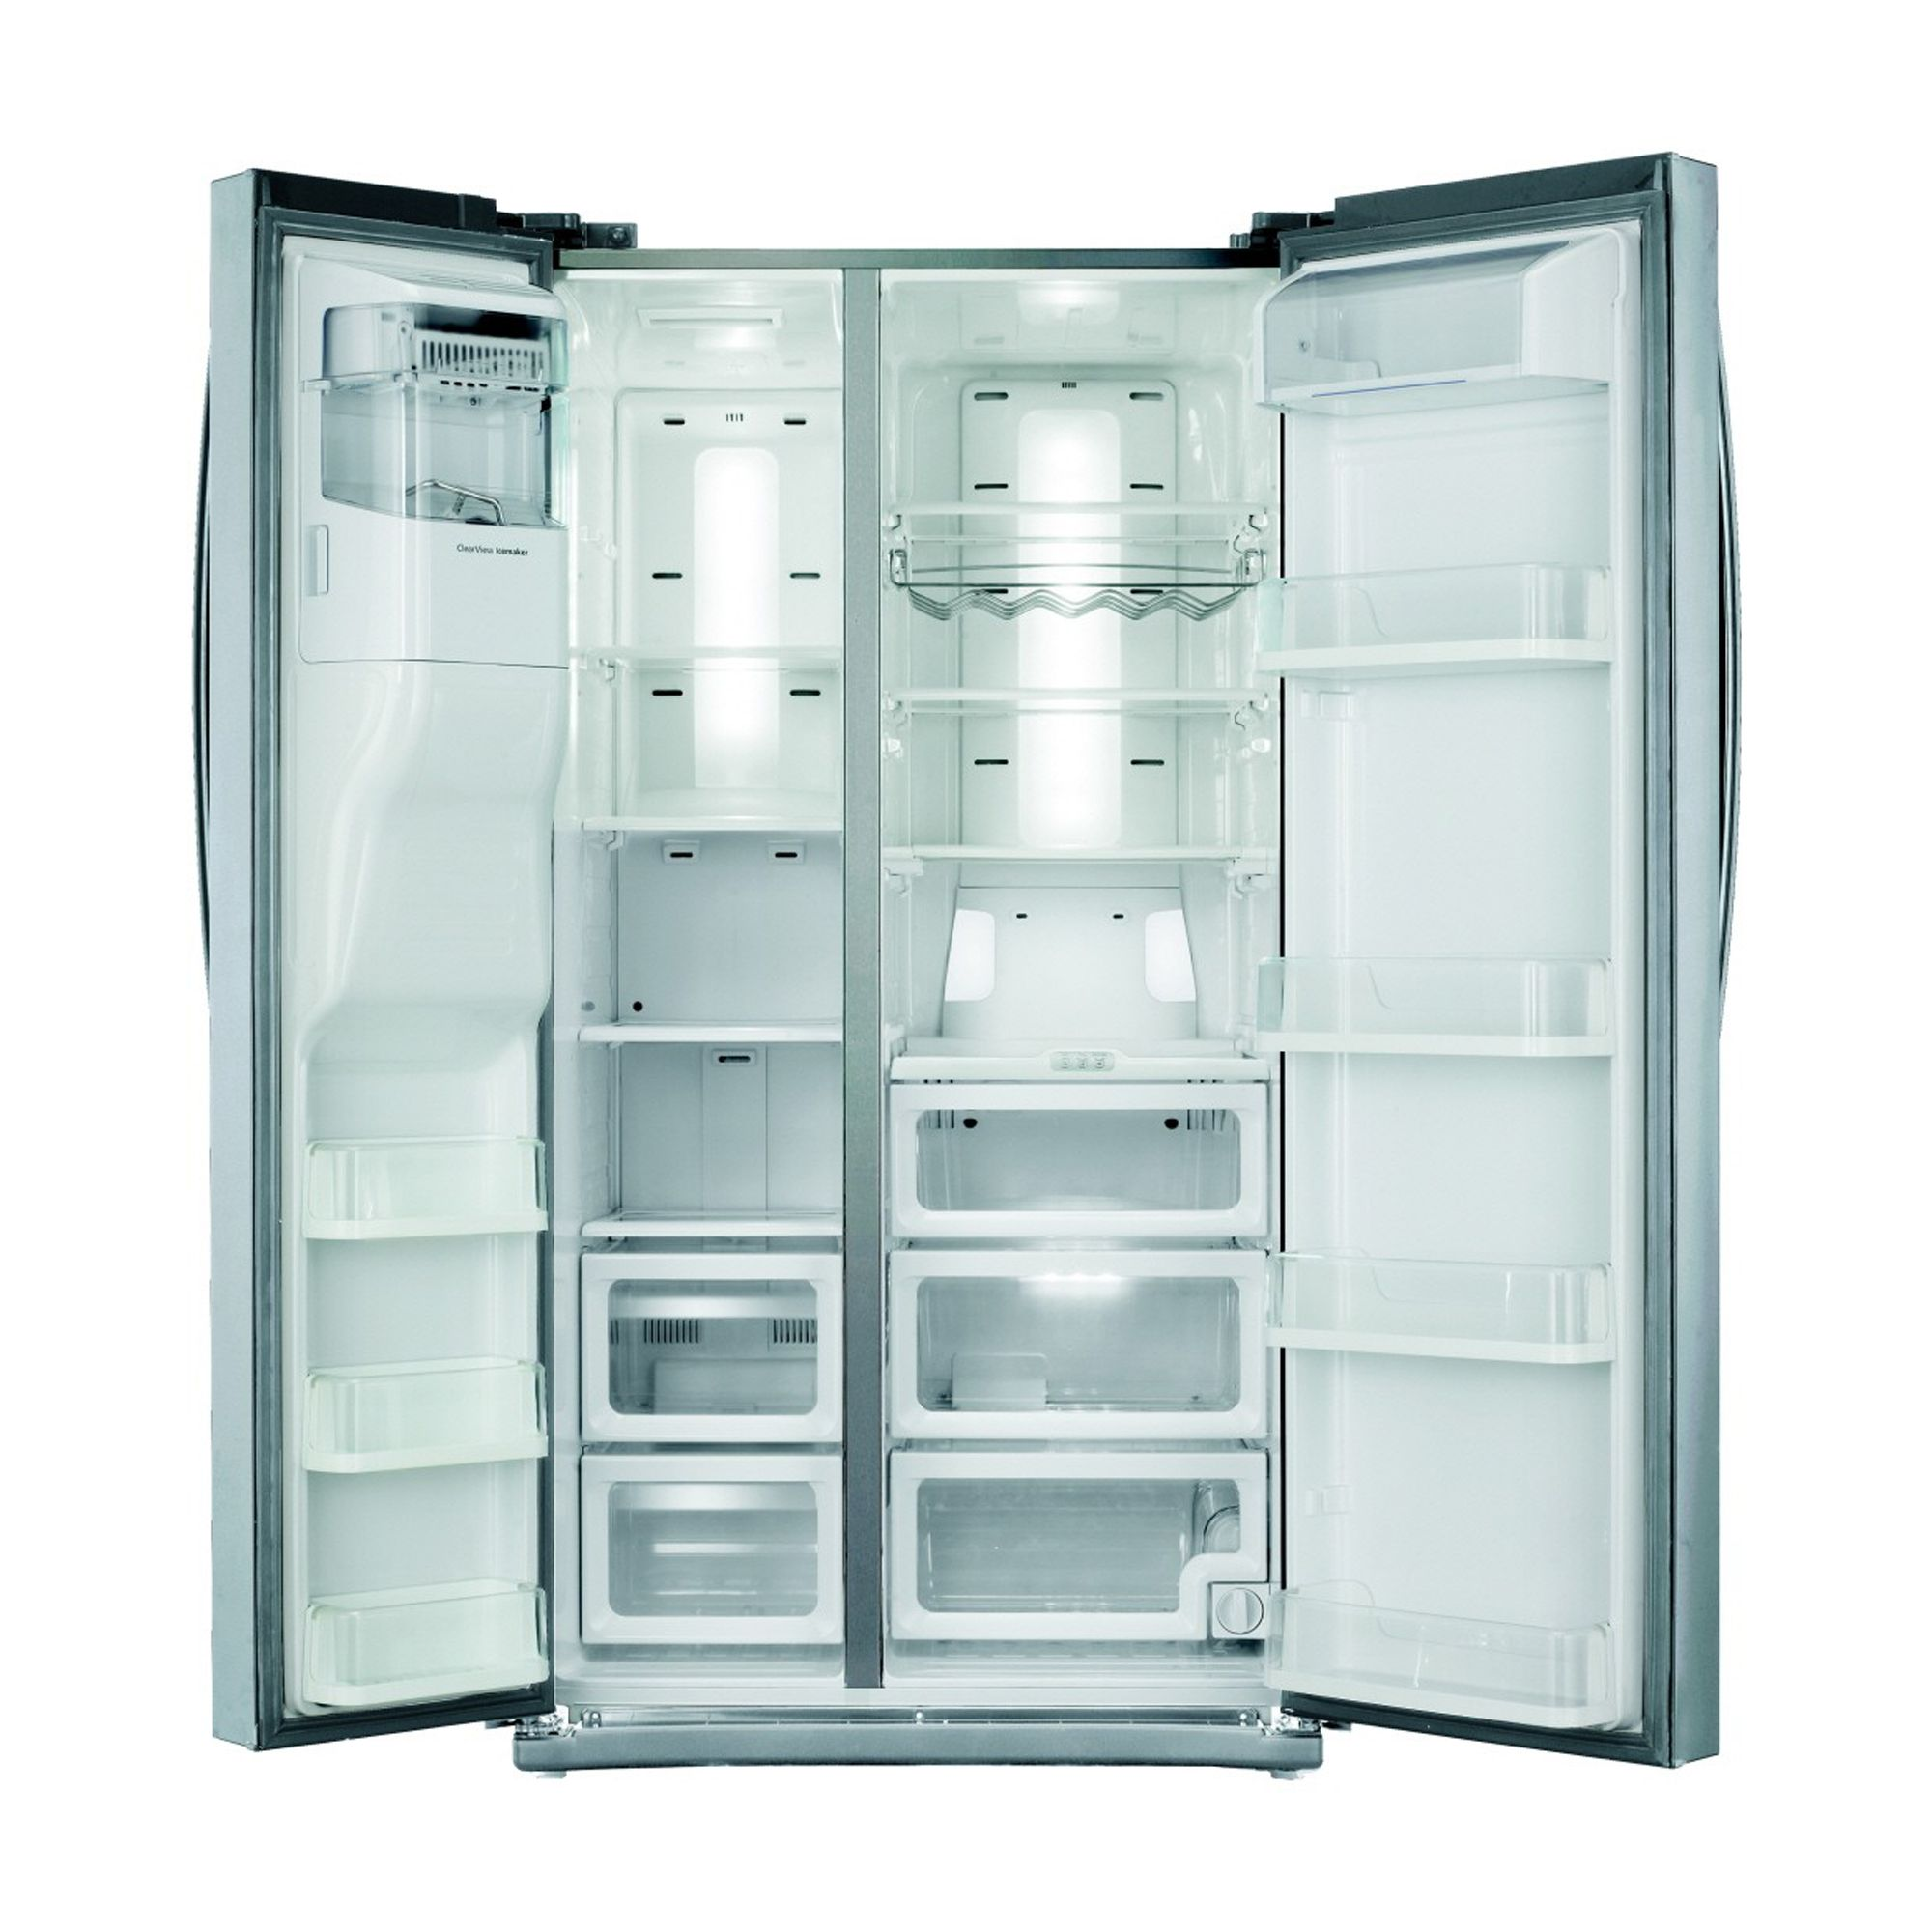 Samsung 25.5 cu. ft. Side-by-Side Refrigerator-Stainless Steel